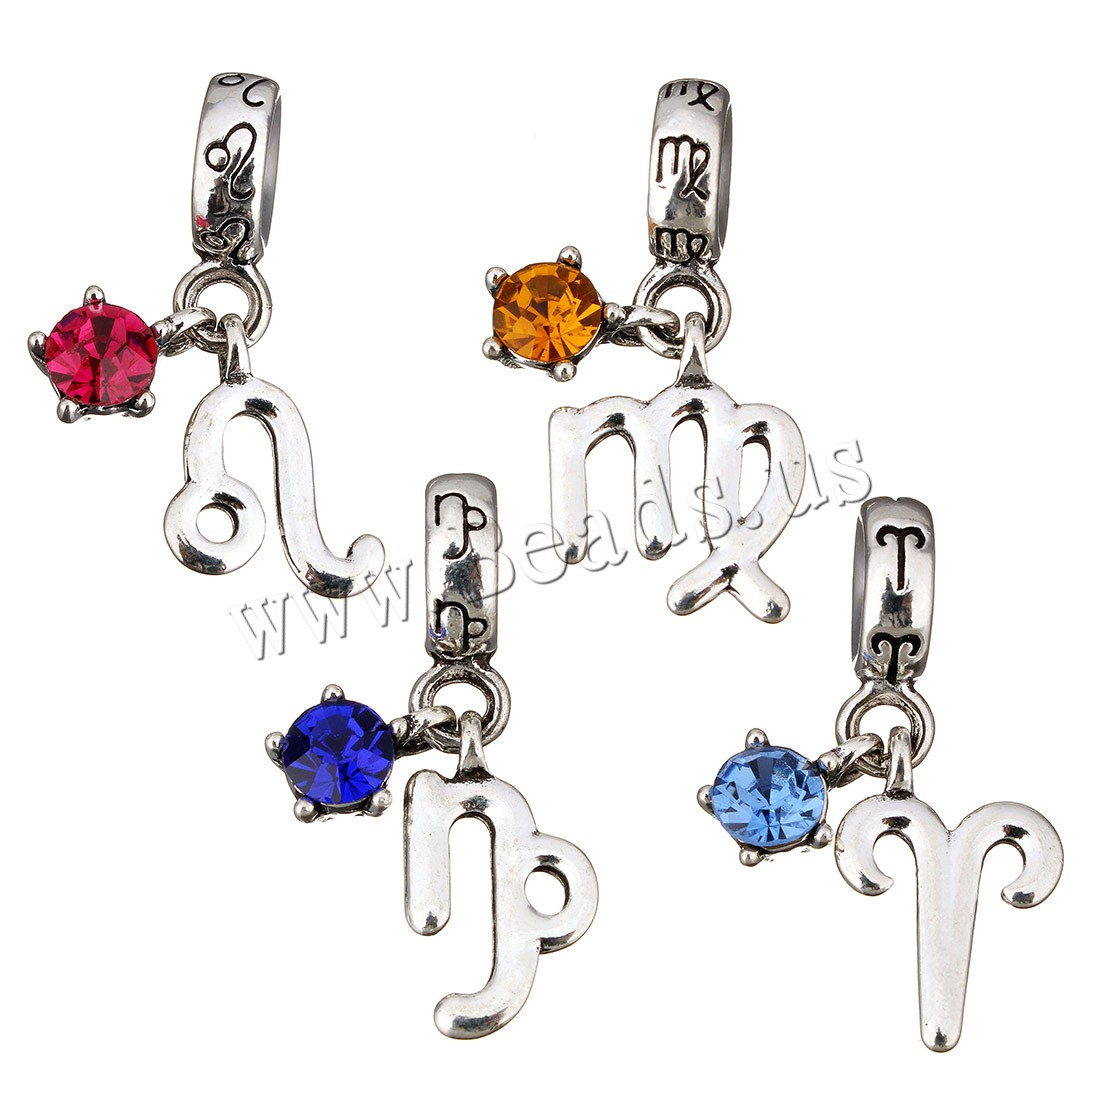 Buy Brass European Pendant Chinese Zodiac platinum plated different styles choice & without troll & cubic zirconia Hole:Approx 5mm 1 Sold Lot